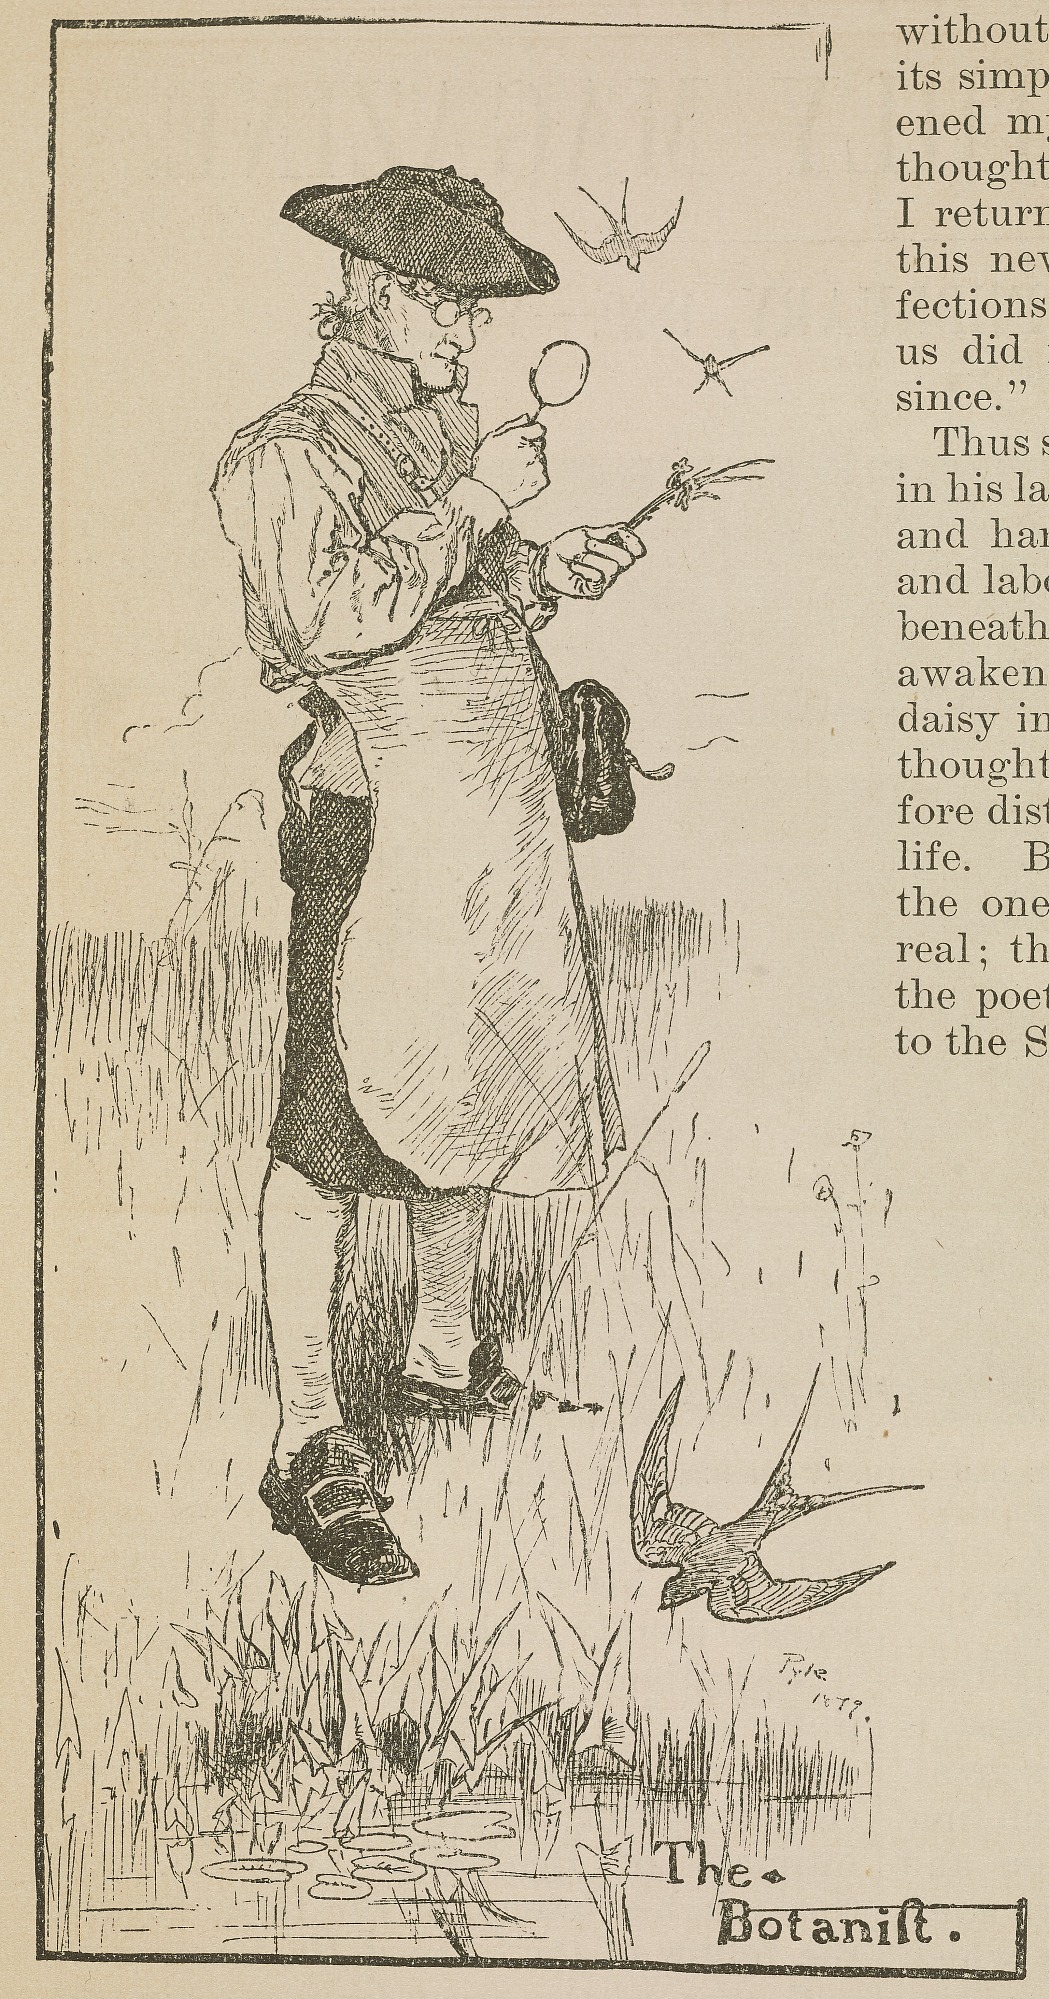 John Bartram, Illustration by Howard Pyle, published in Harper's New Monthly Magazine